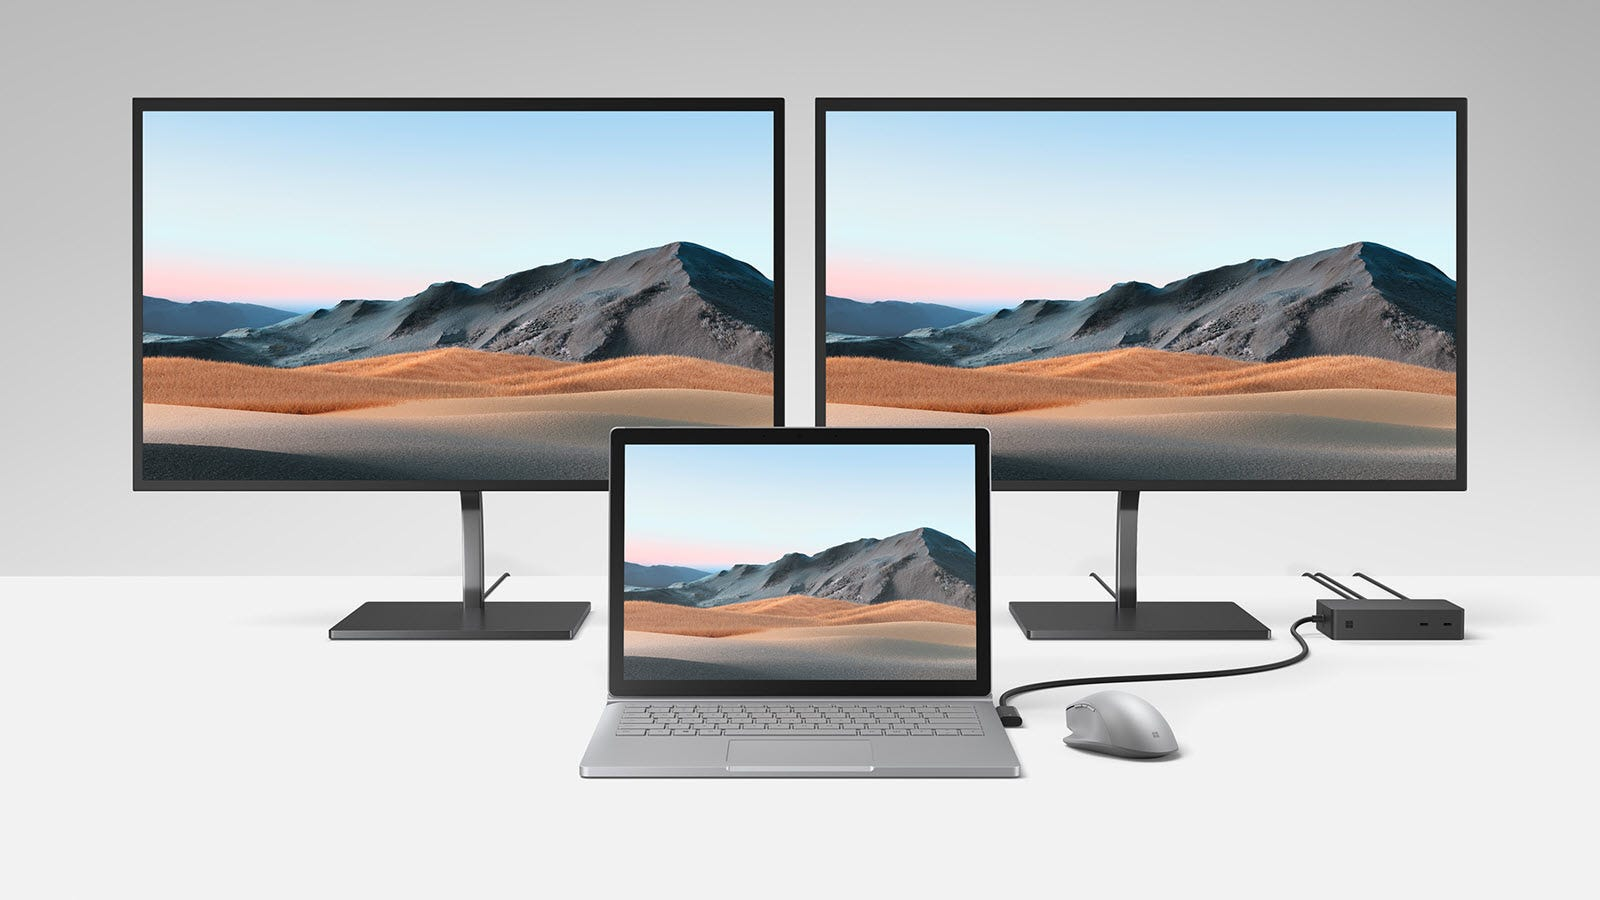 A Surface Book 3 hooked up to two monitors through a Surface Dock 2